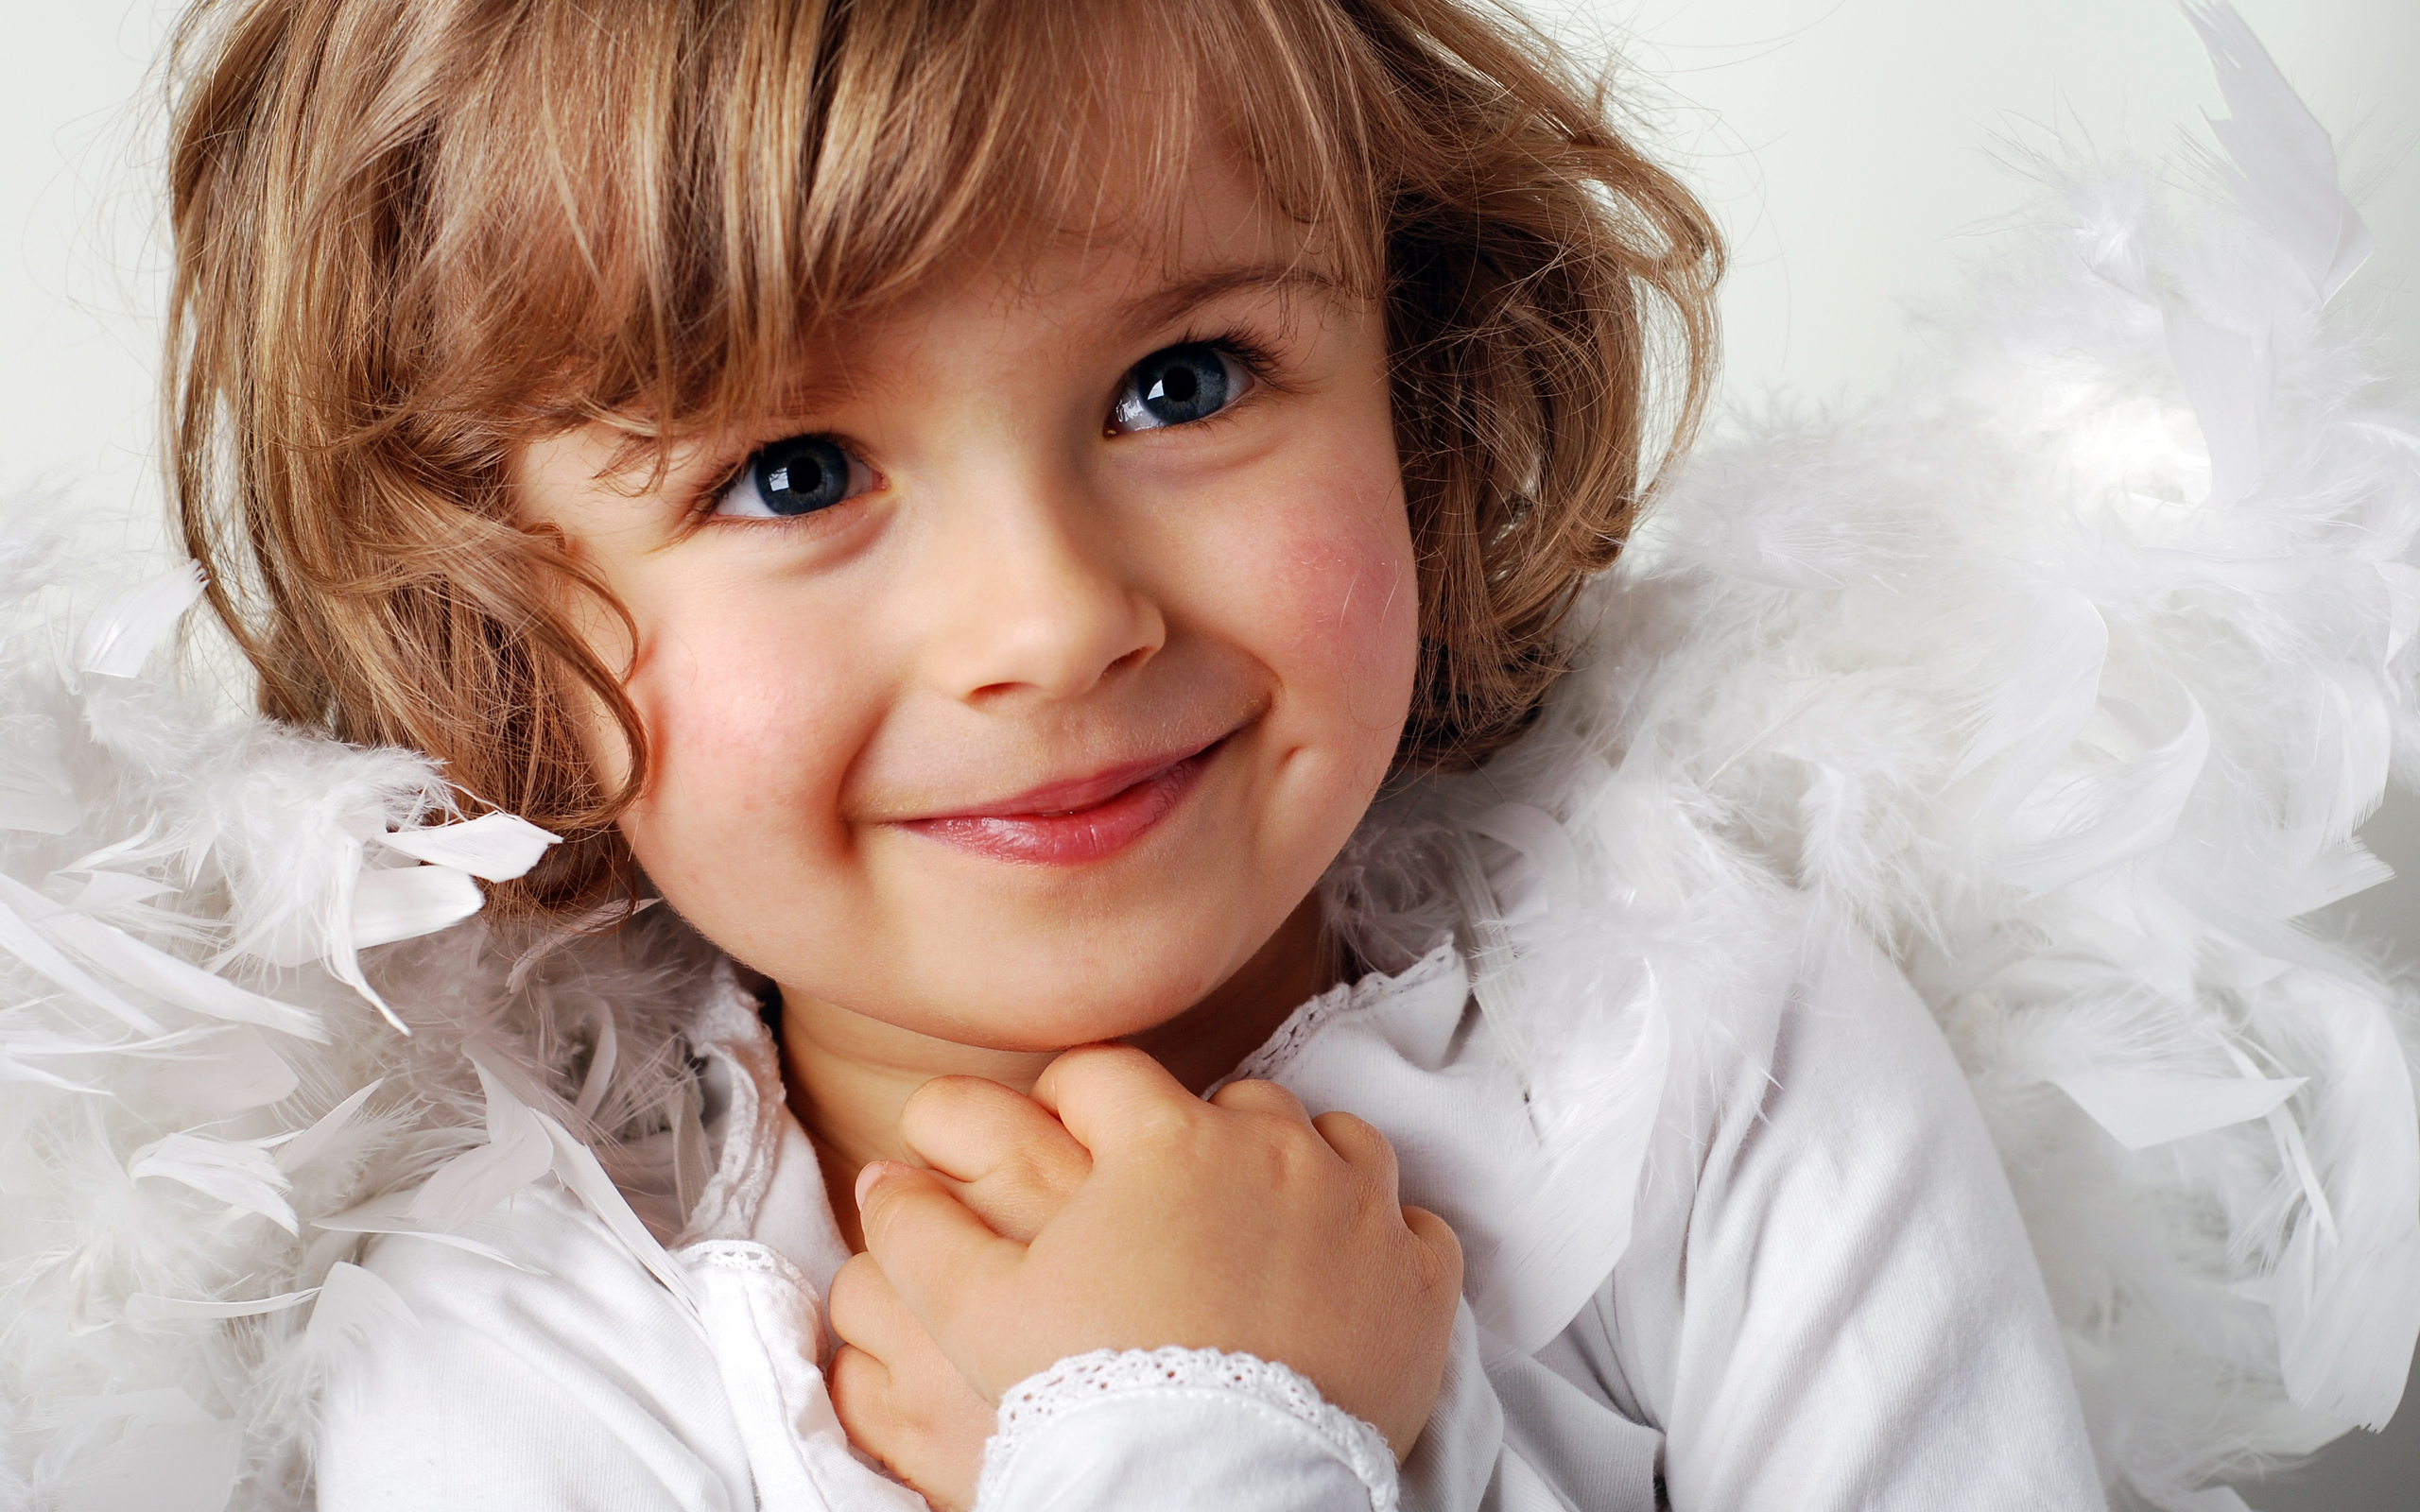 Free Photo Child Smile New Year Cute Childhood Little Girl